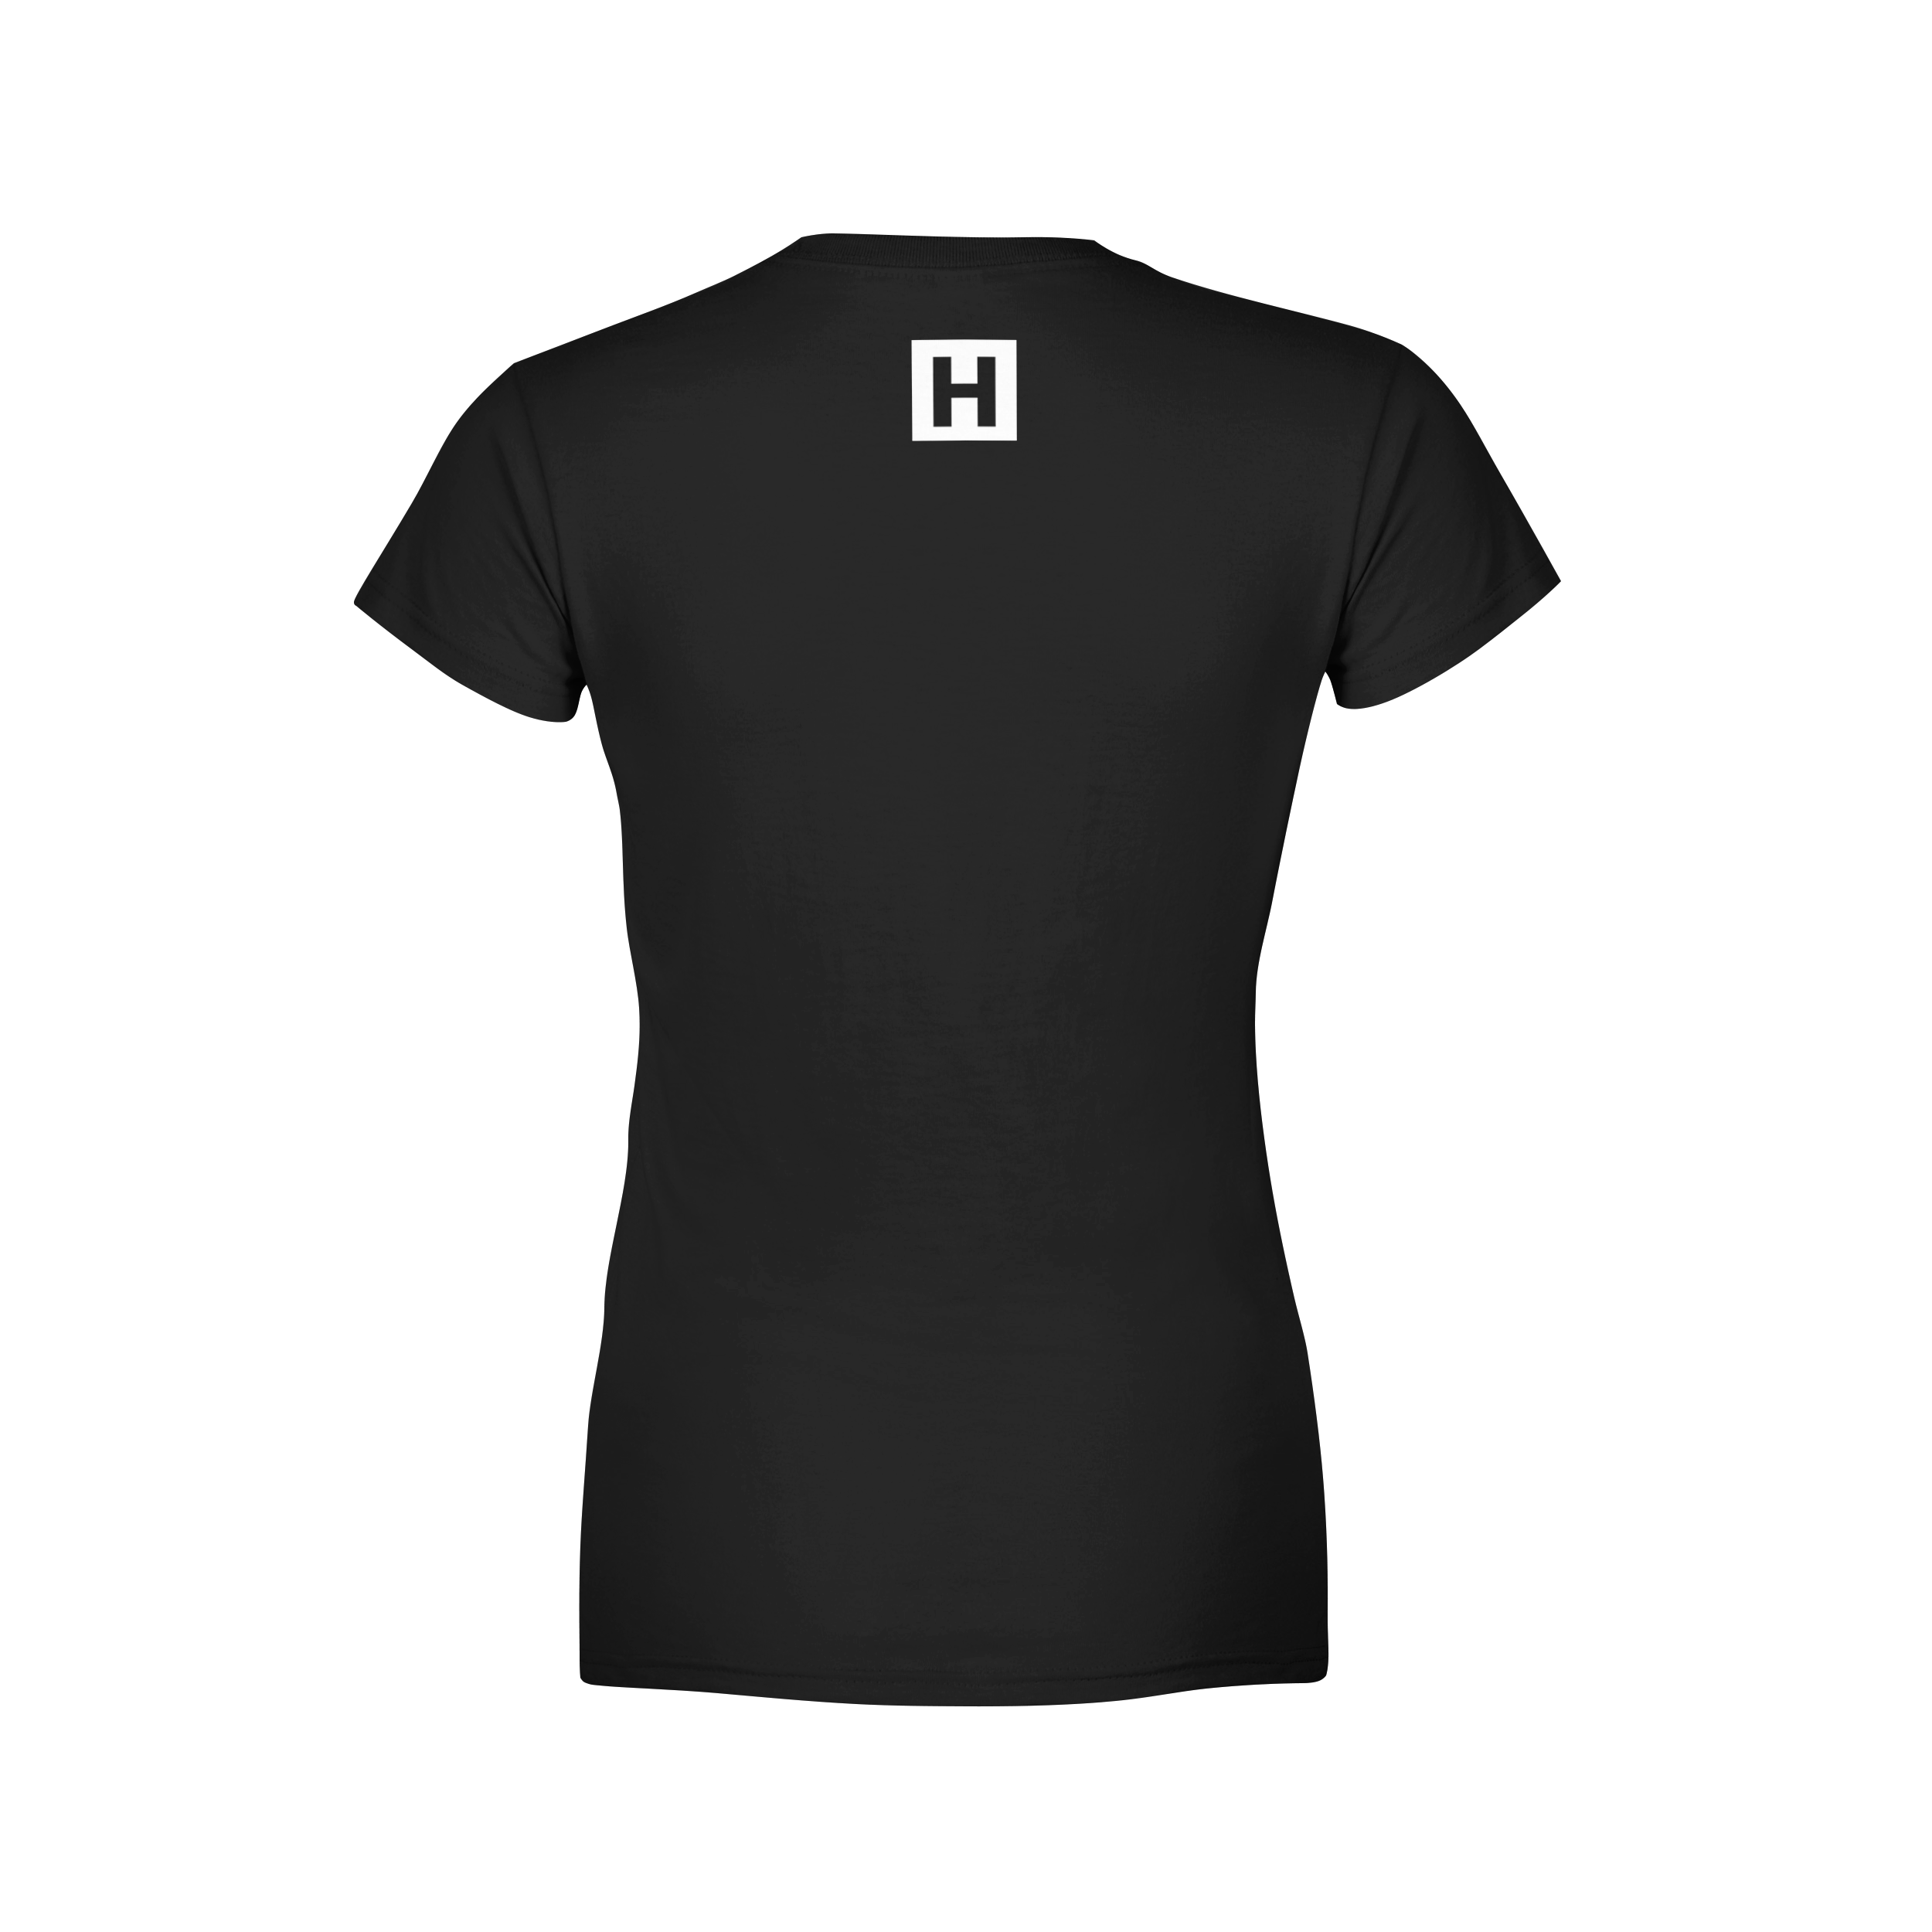 Le hustle women 39 s tee shirt black hstlr wear Womens black tee shirt